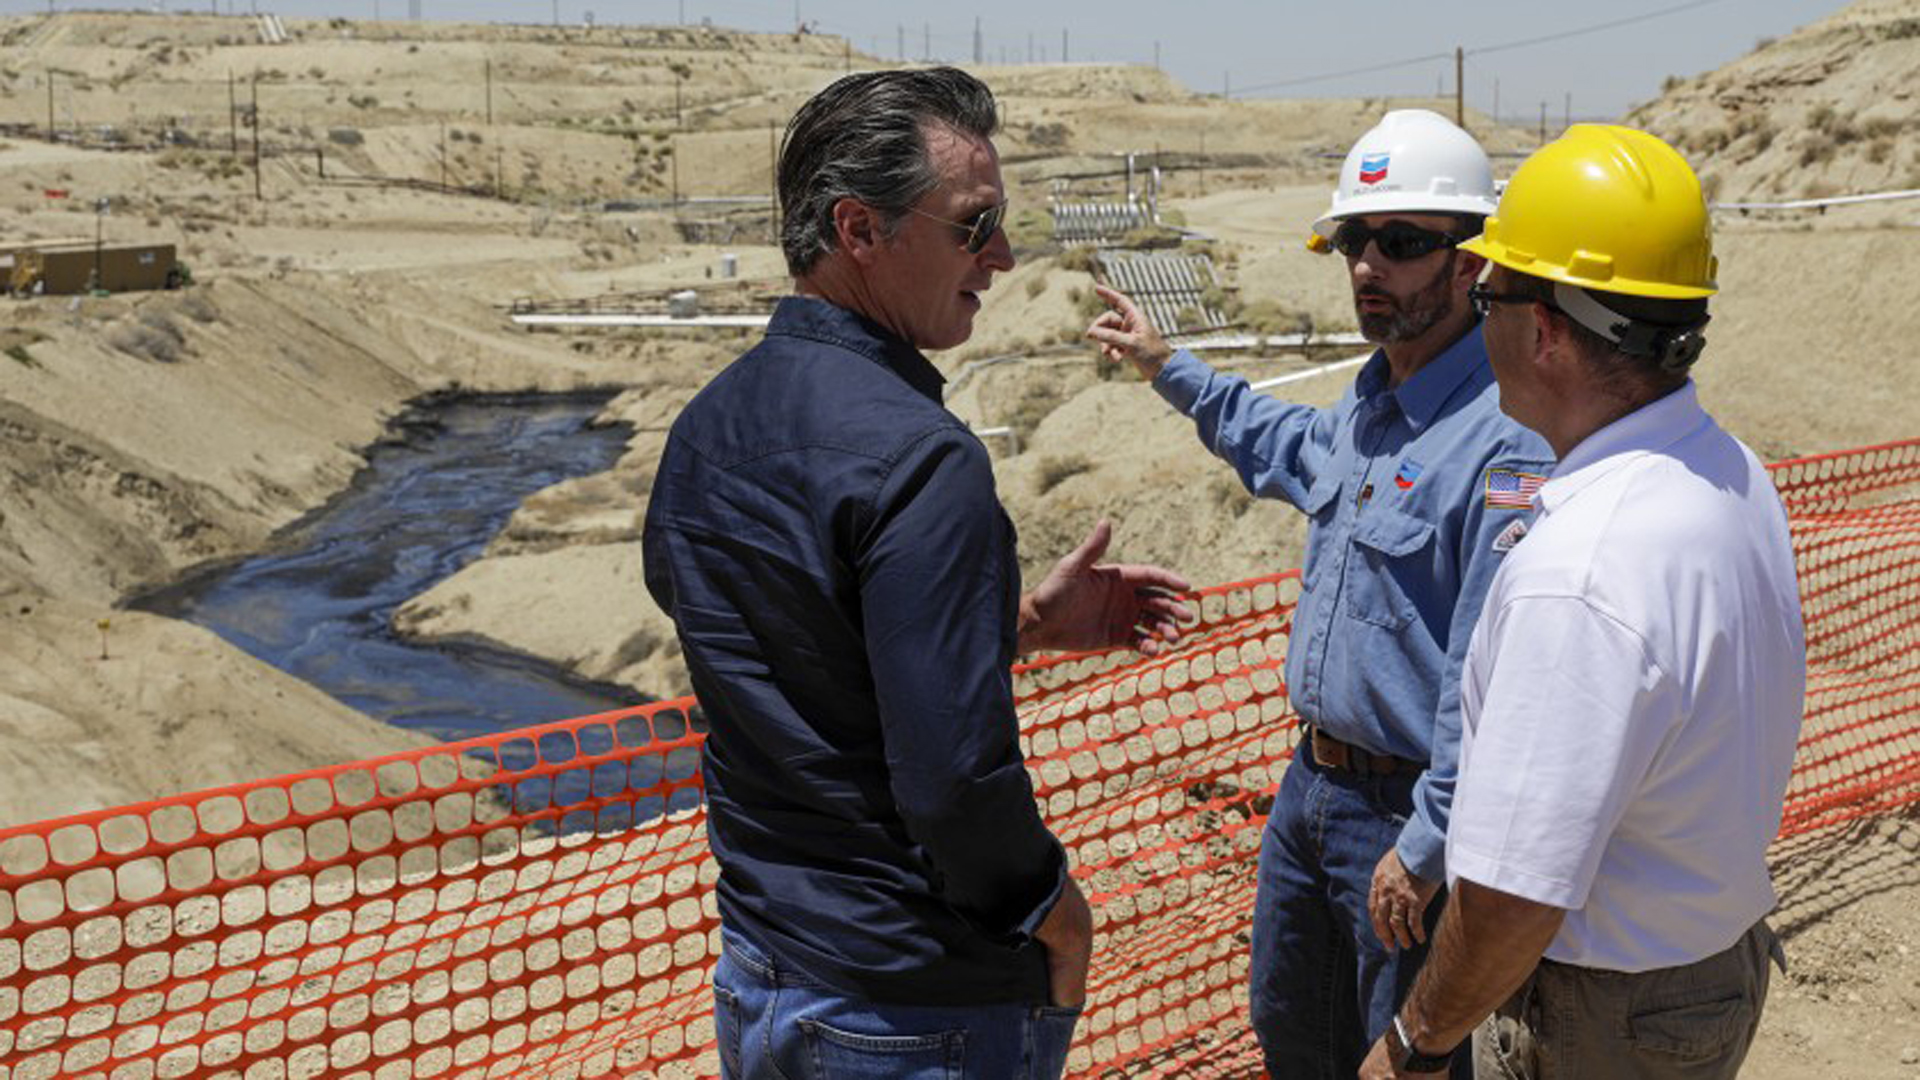 Gov. Gavin Newsom, left, is briefed by Billy Lacobie, of Chevron, center, and Jason Marshall of California department of conservation division of oil, gas, in July while touring the Chevron oil field west of Bakersfield where a spill of more than 800,000 gallons flowed into a dry creek bed. (Credit: Irfan Khan/Los Angeles Times)